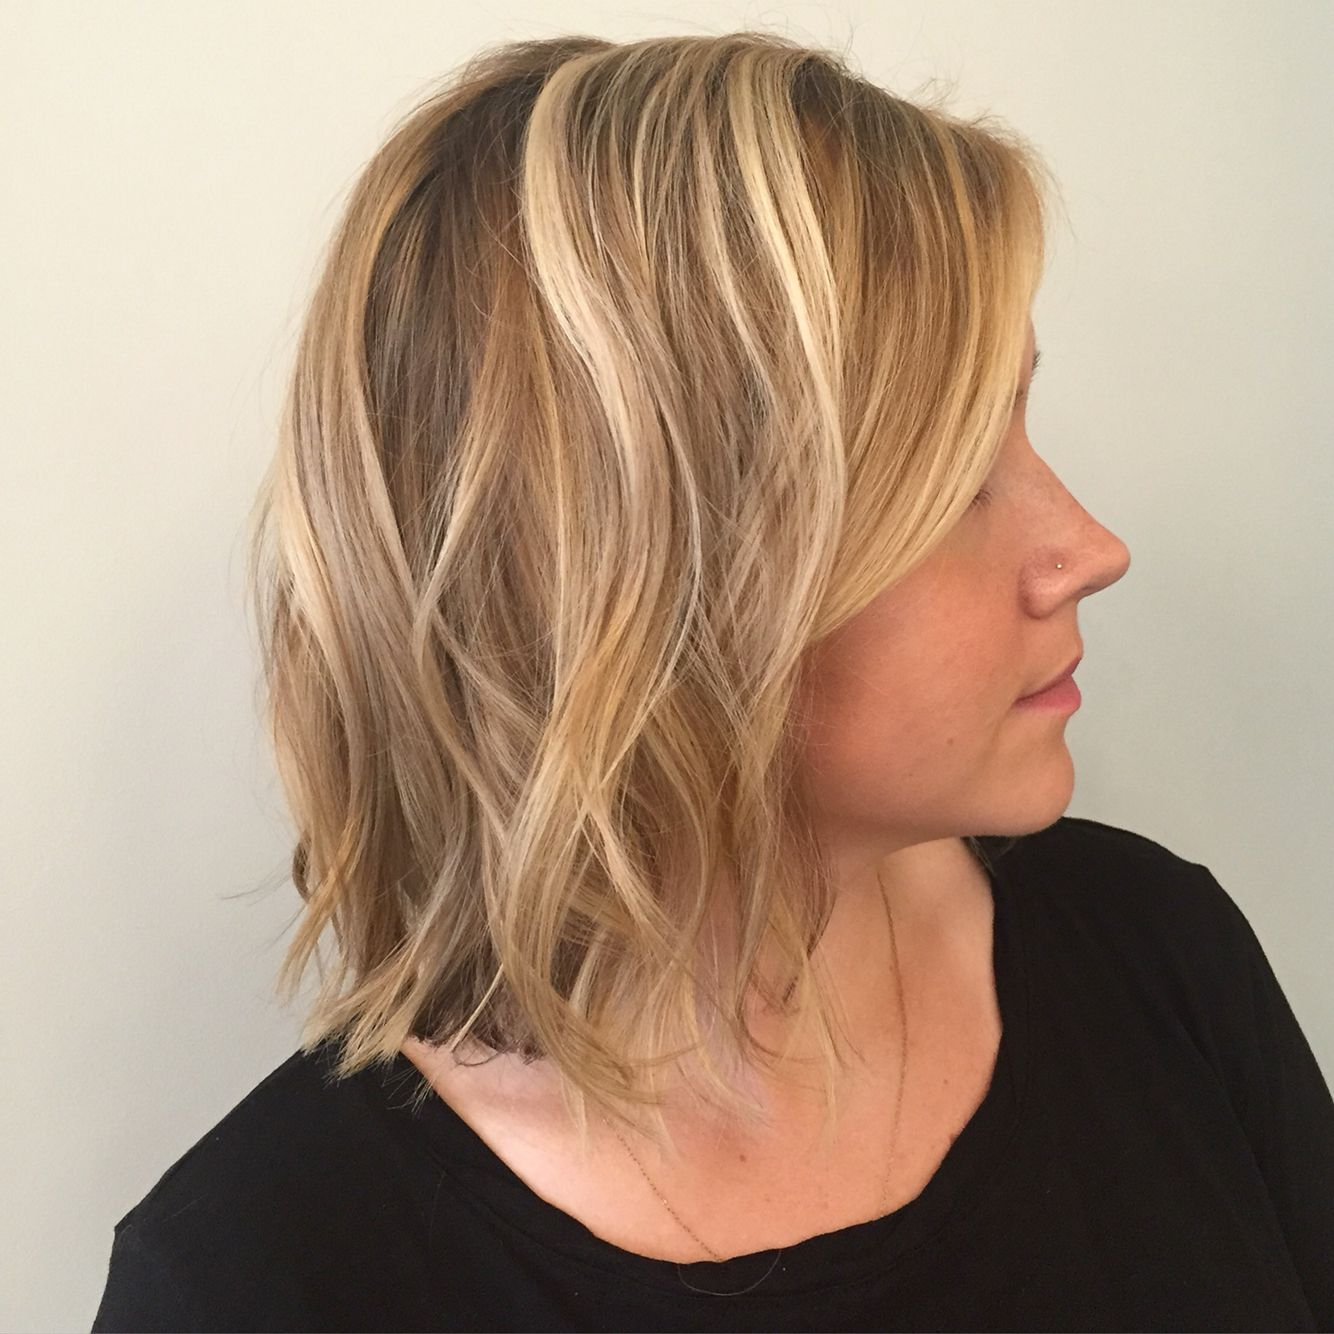 Wavy Bob With Balayage Highlights Blonde Hair Done By Holly At Blueprint Modern Hair In Portland Or Ig H Modern Hairstyles Hair Styles Balayage Highlights